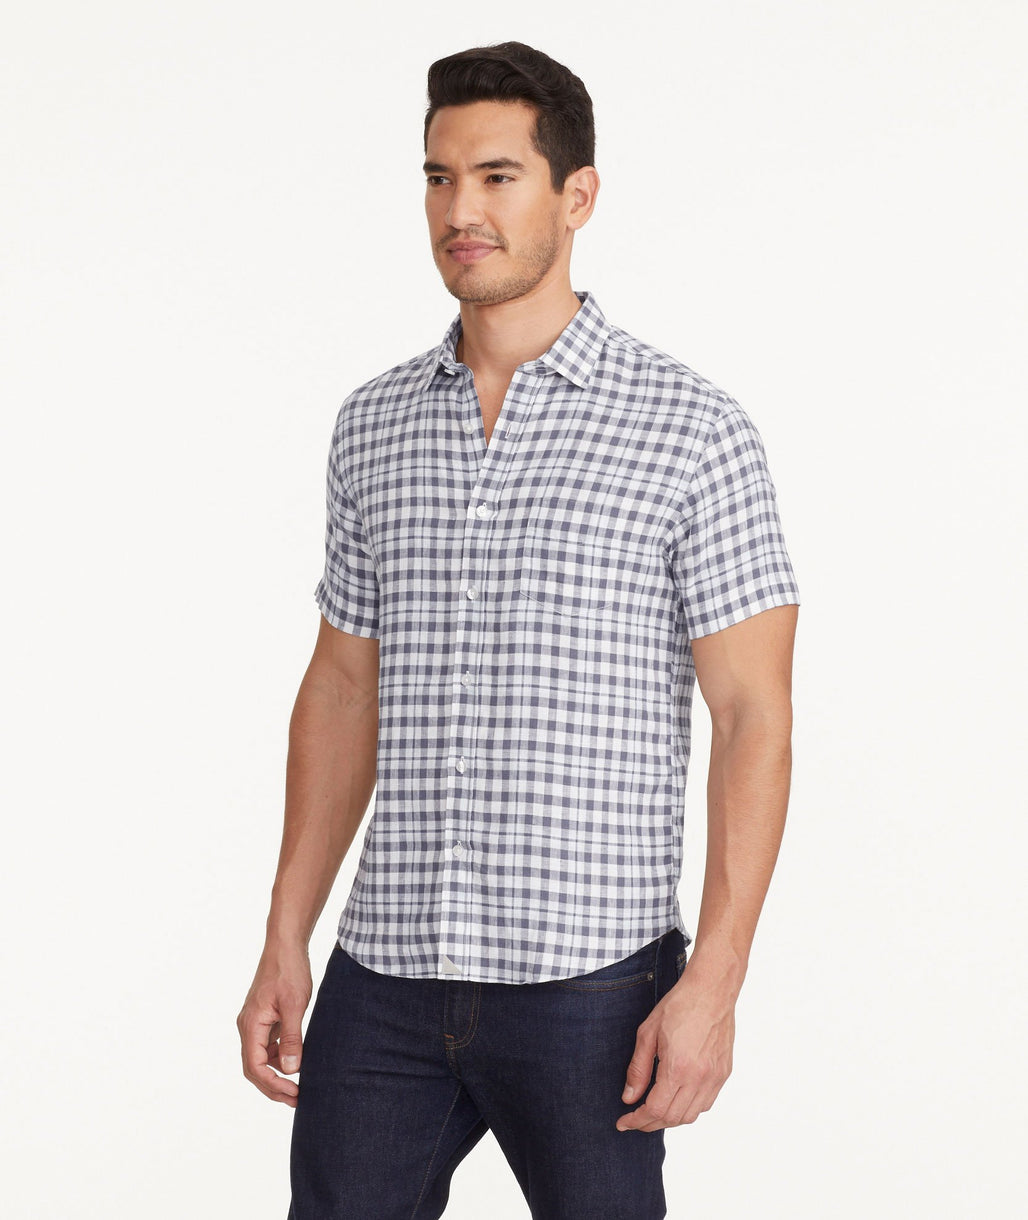 A model wearing a Light Blue Wrinkle-Resistant Linen Short-Sleeve Oltrepo Shirt